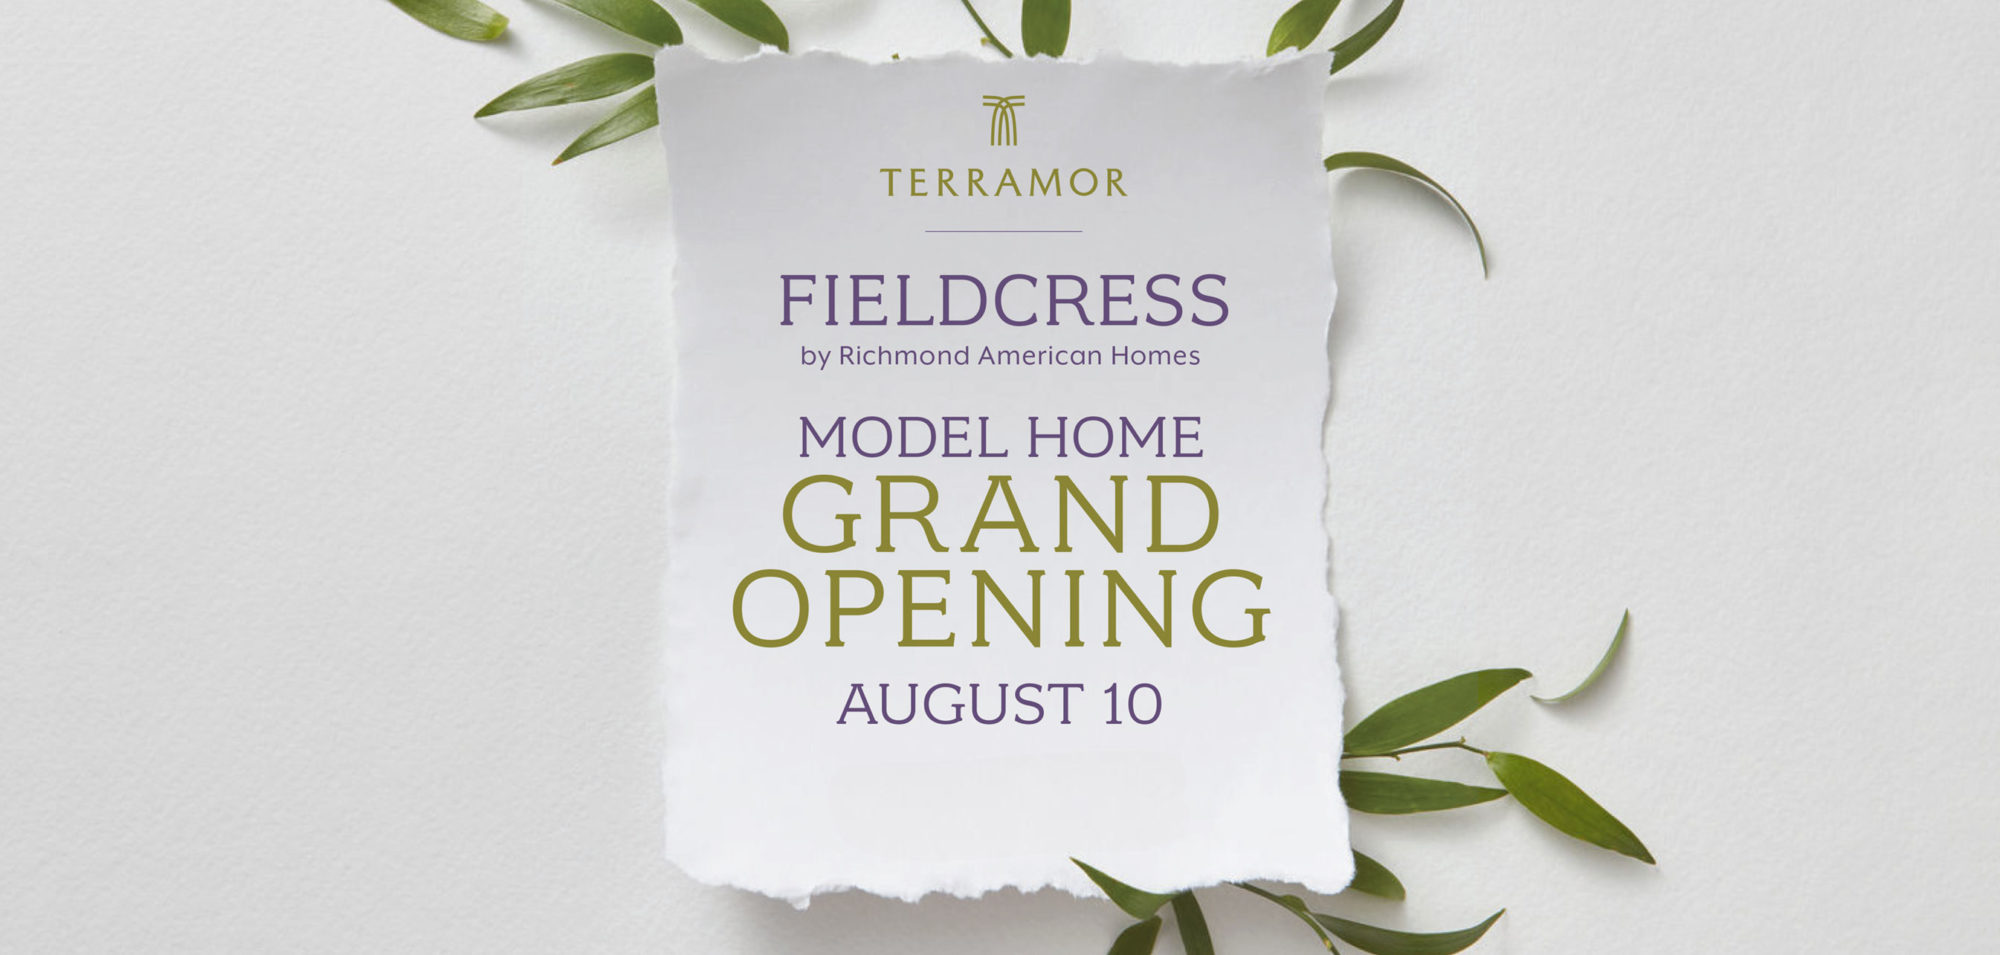 Introducing Fieldcress